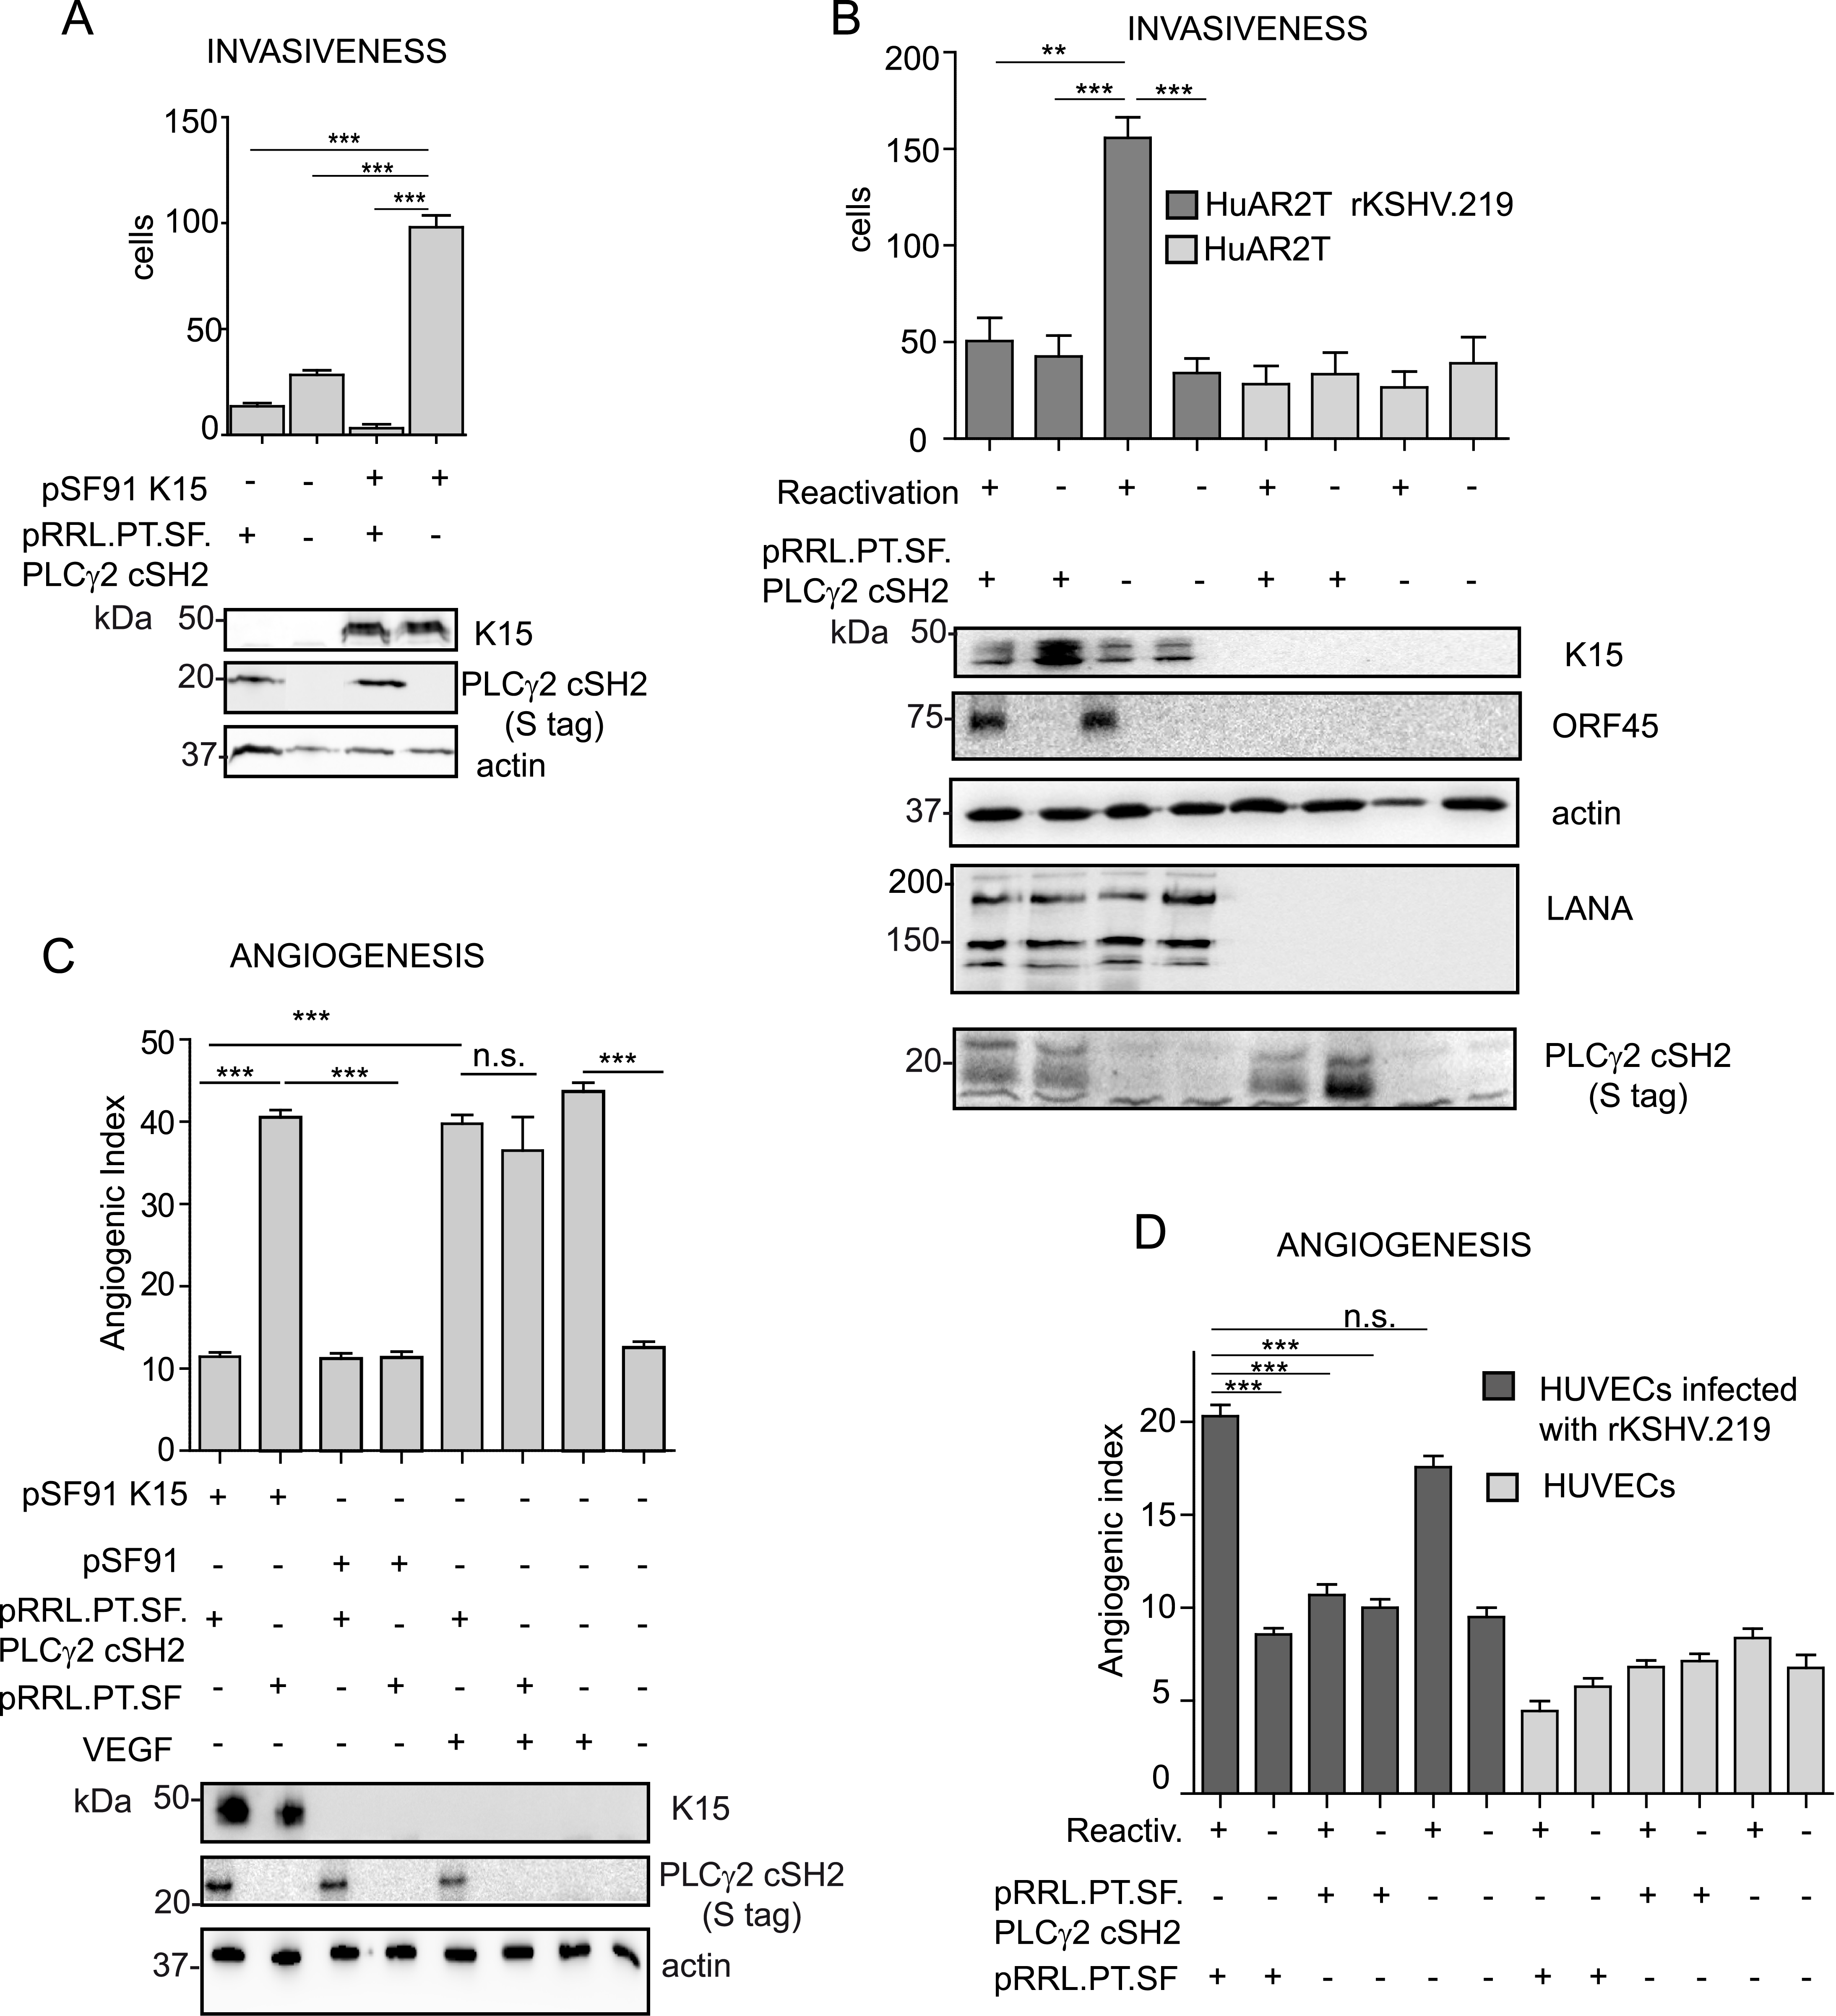 The isolated PLCγ2 cSH2 domain impairs the increased invasiveness and angiogenesis of KSHV infected endothelial cells.